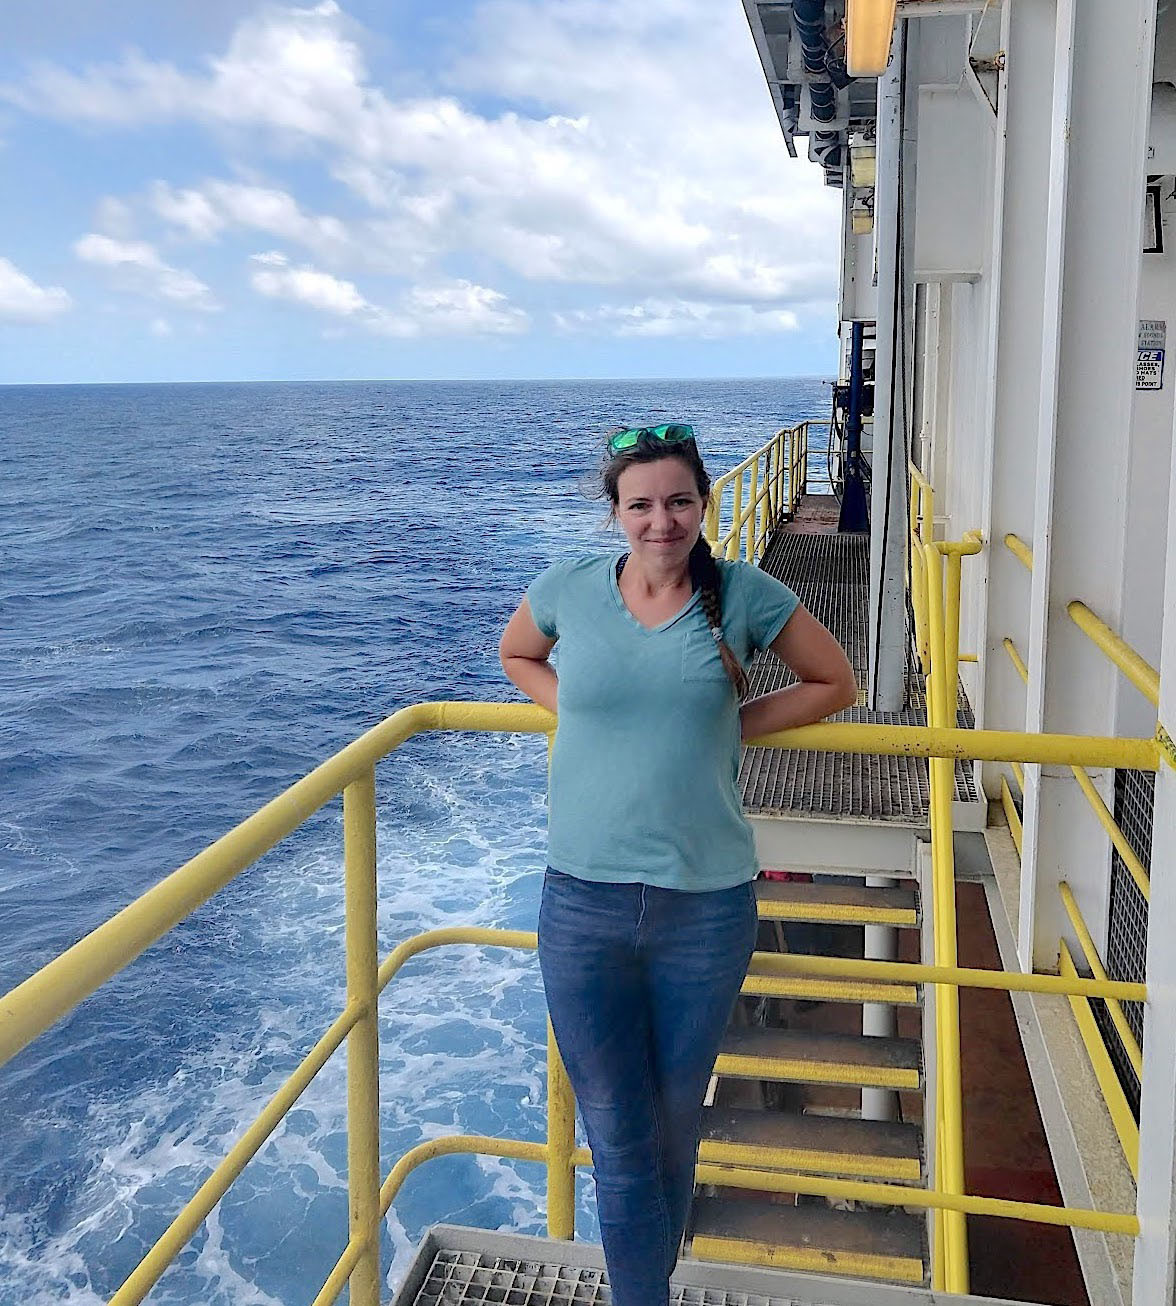 Alum Scientist Zooms Into Class From the Atlantic Ocean